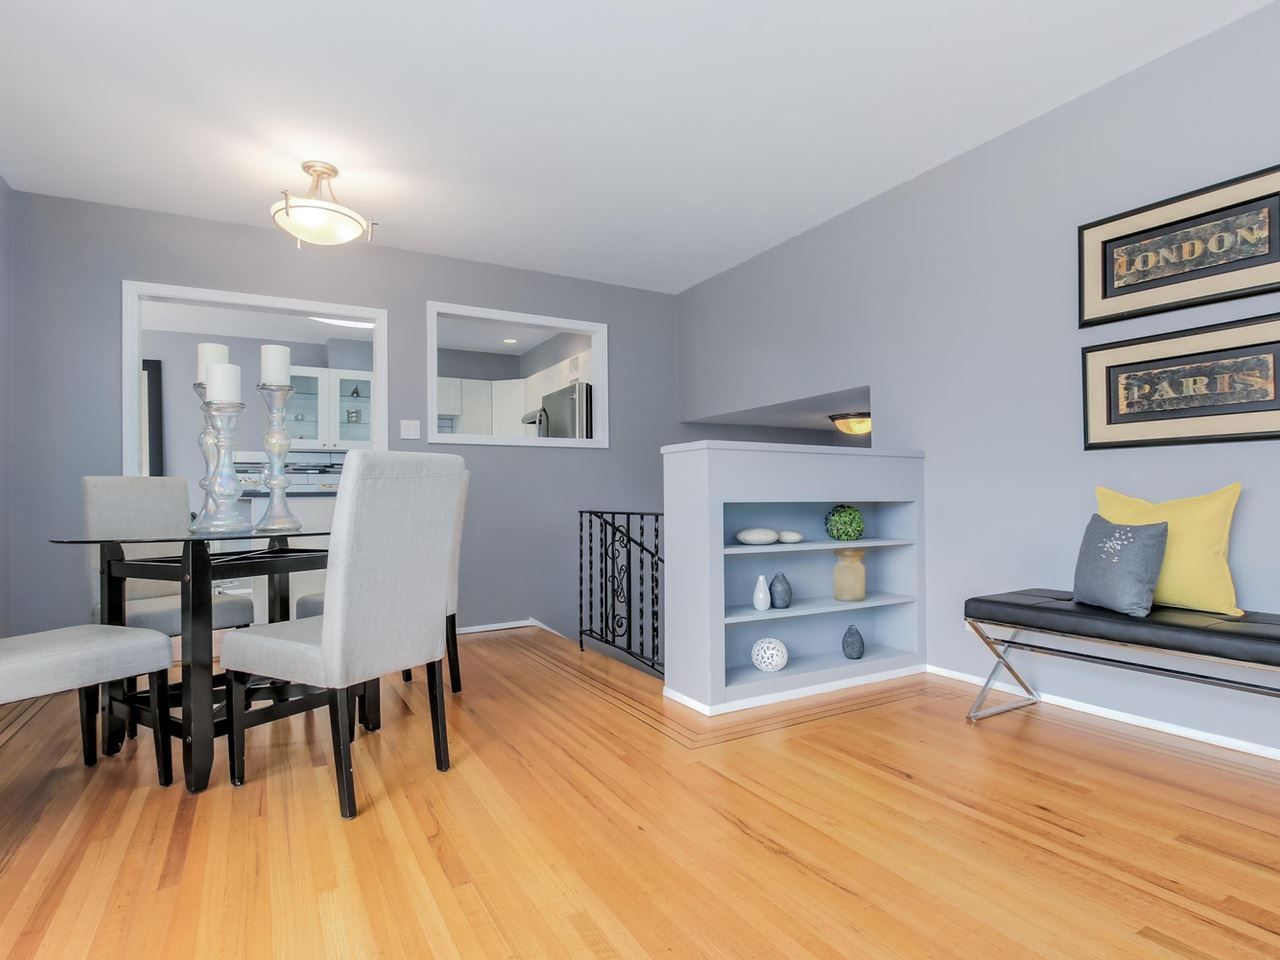 Photo 10: Photos: 1014 CALVERHALL Street in North Vancouver: Calverhall House for sale : MLS® # R2090205